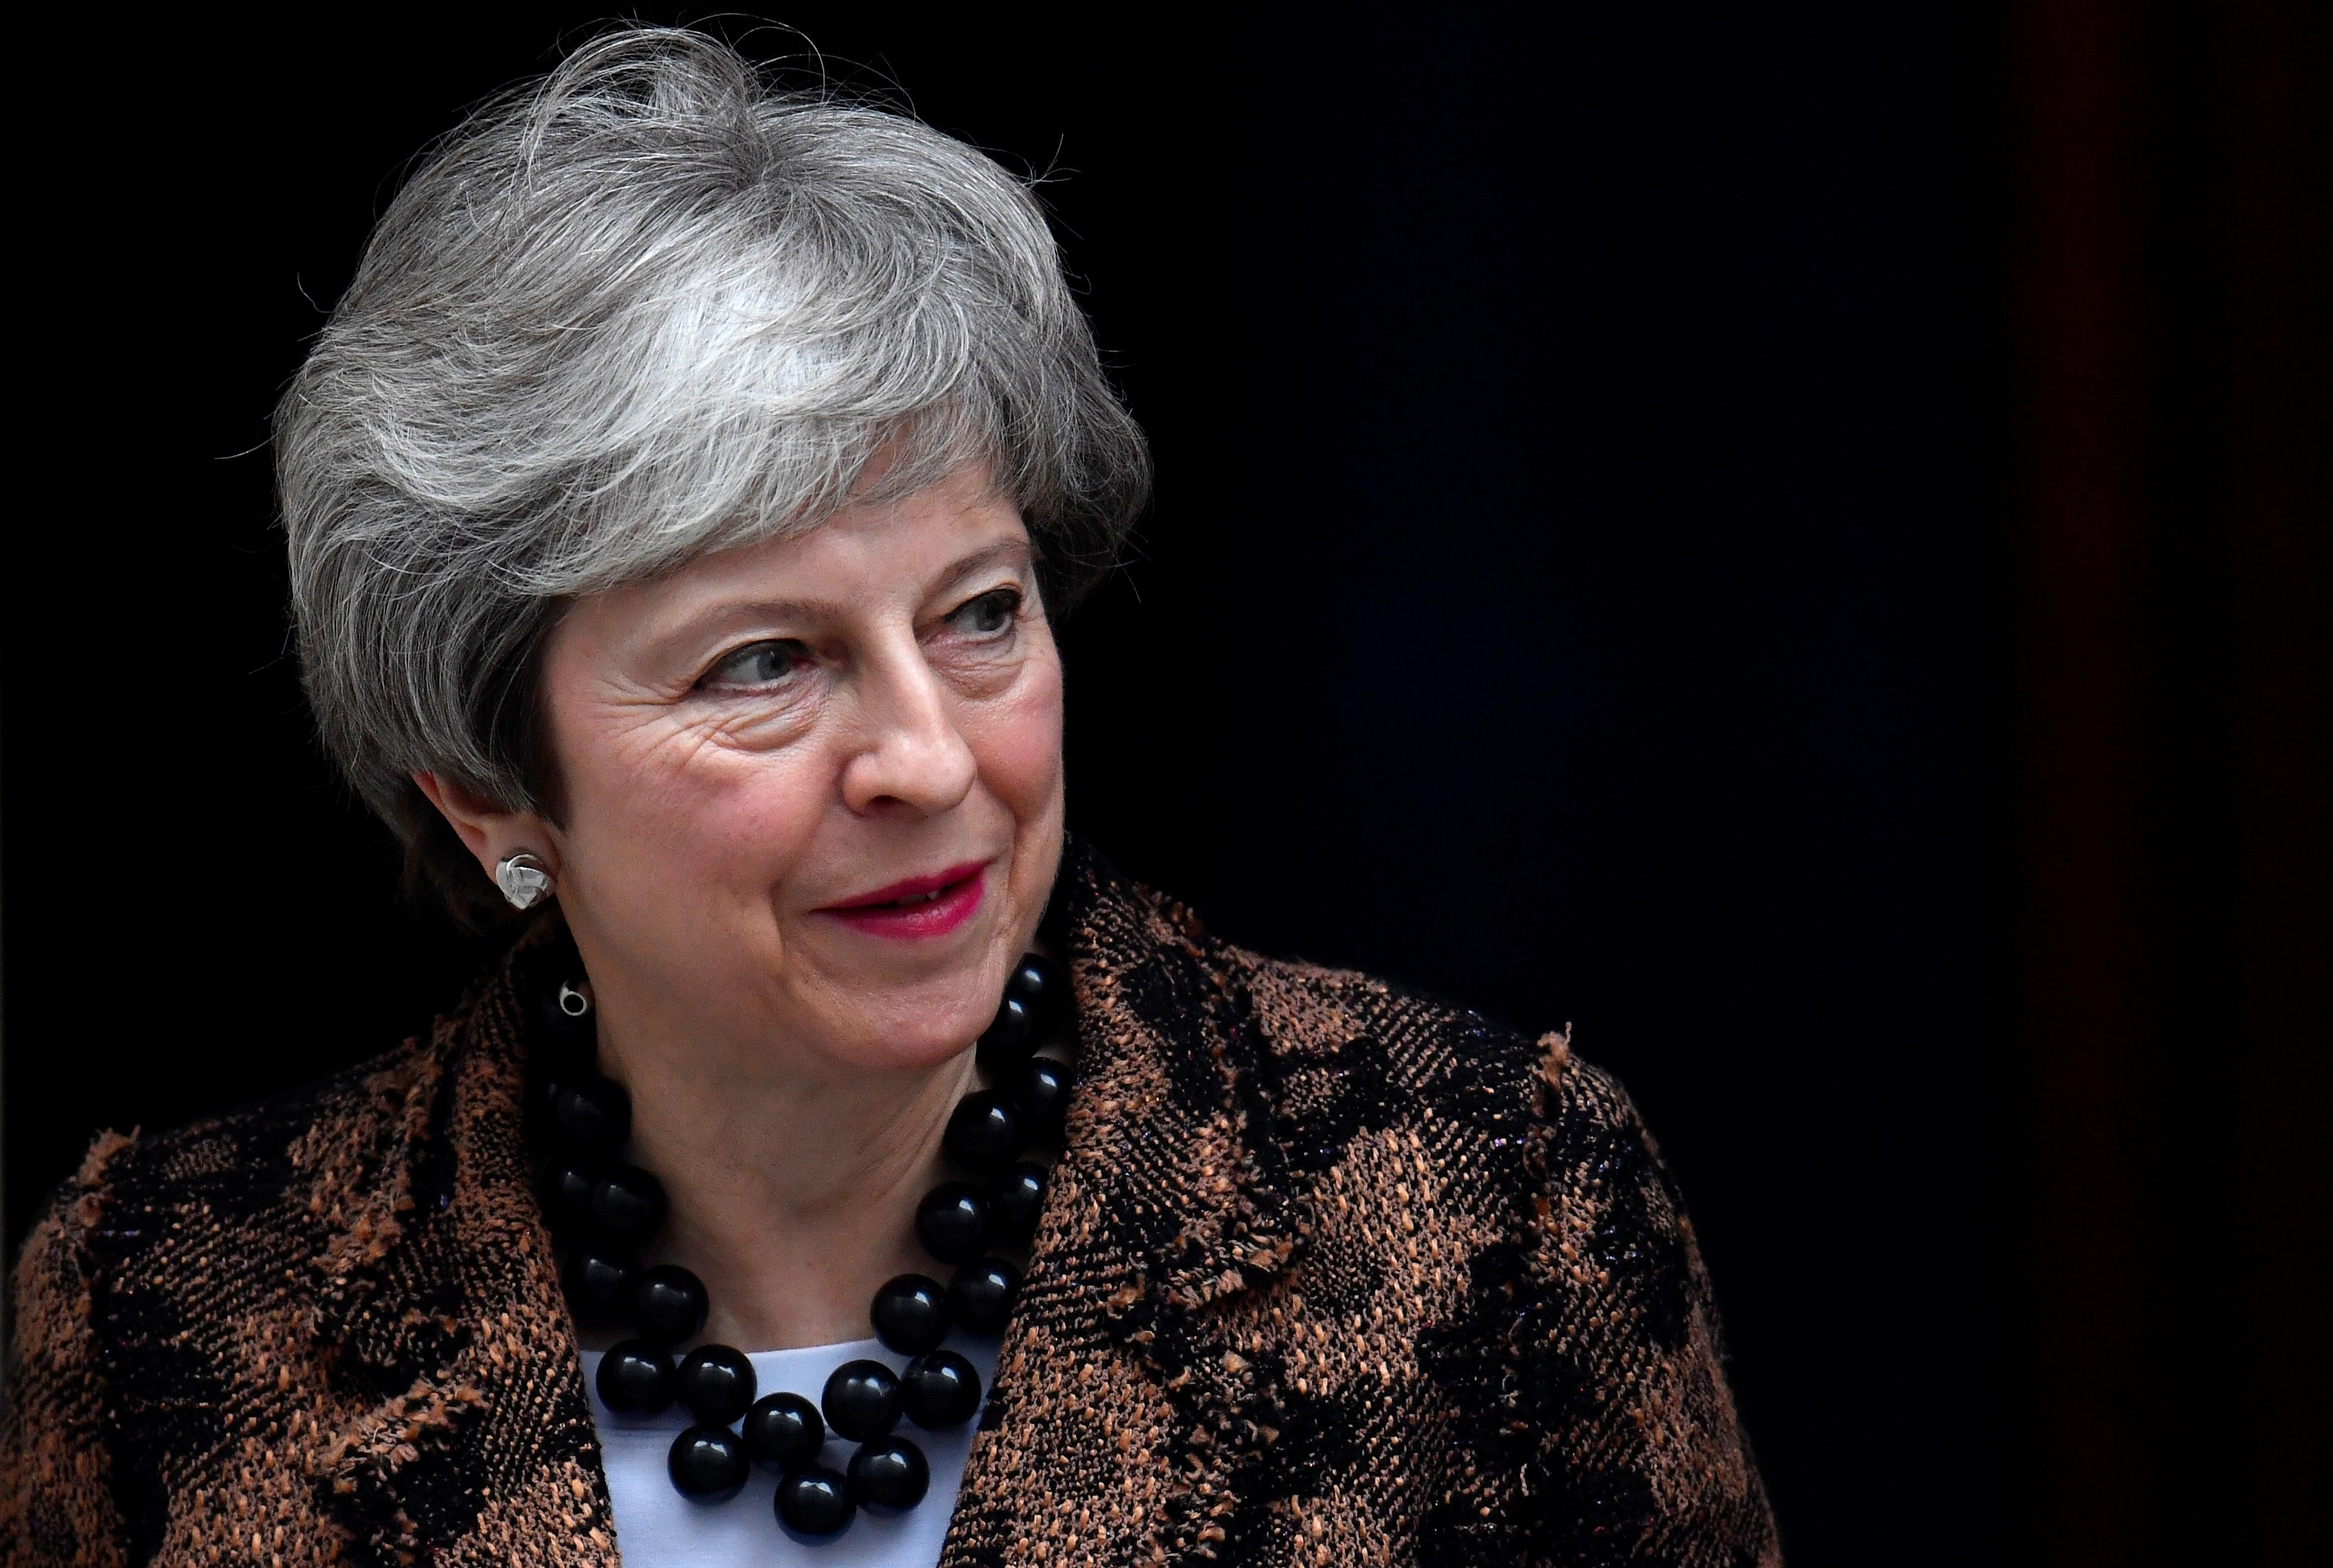 UK PM May says looking forward to exploring Polish proposal for backstop time limit